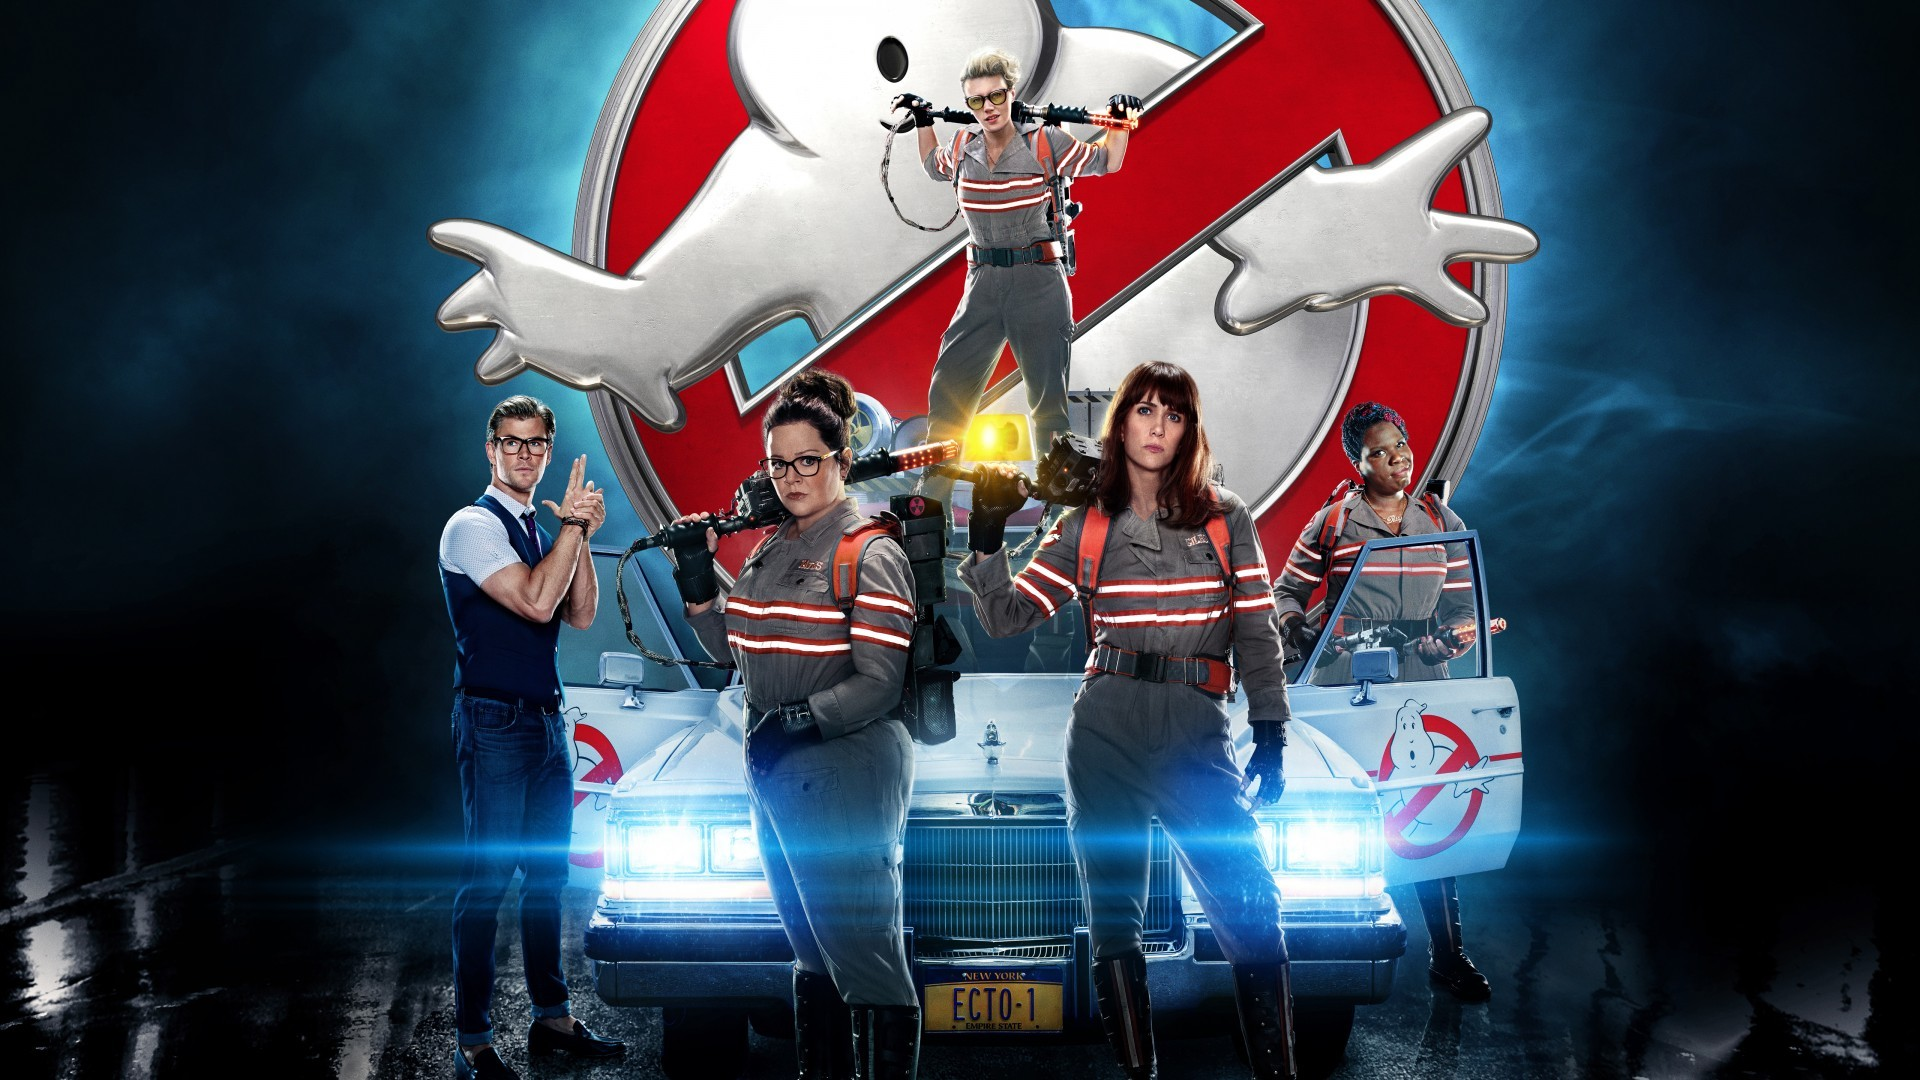 1920x1080 Wallpaper Ghostbusters, Leslie Jones, Melissa McCarthy, Kate McKinnon,  Kristen Wiig, Movies, #1168